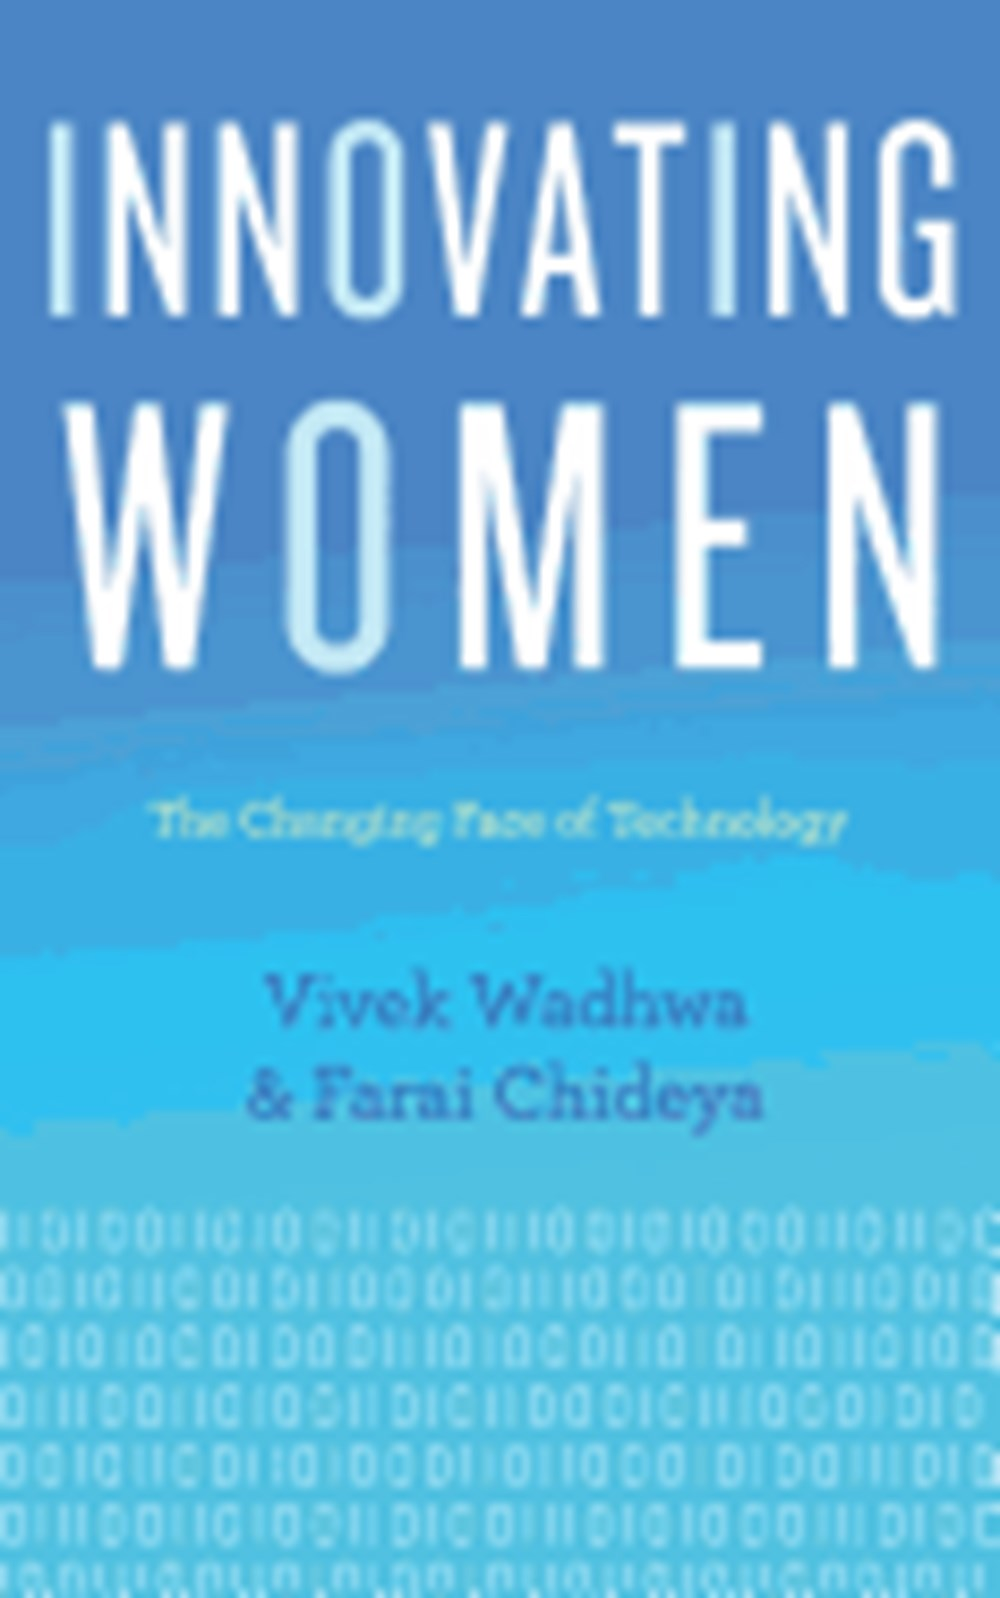 Innovating Women The Changing Face of Technology